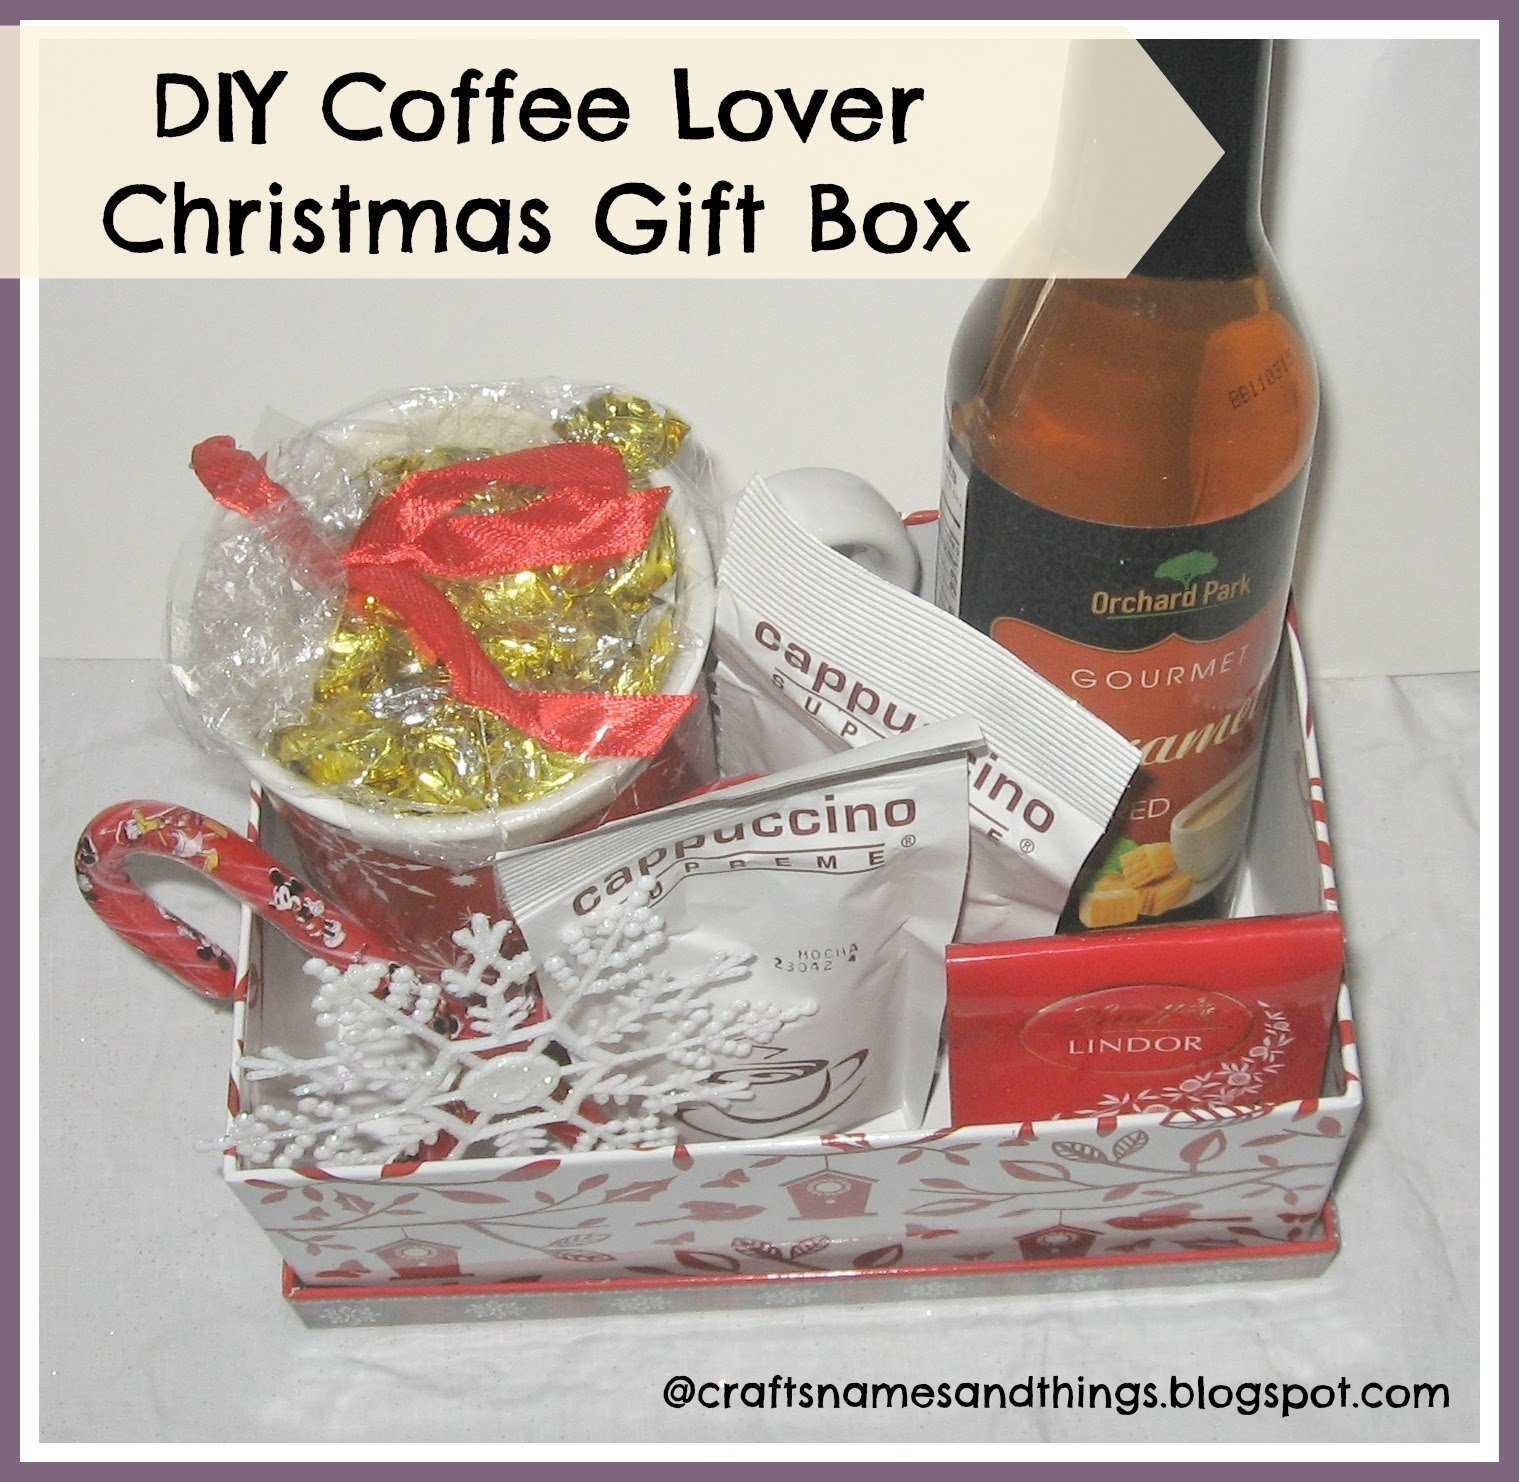 10 Pretty Gift Ideas For Coffee Lovers diy christmas gift ideas how to make coffee lovers christmas gift 2020